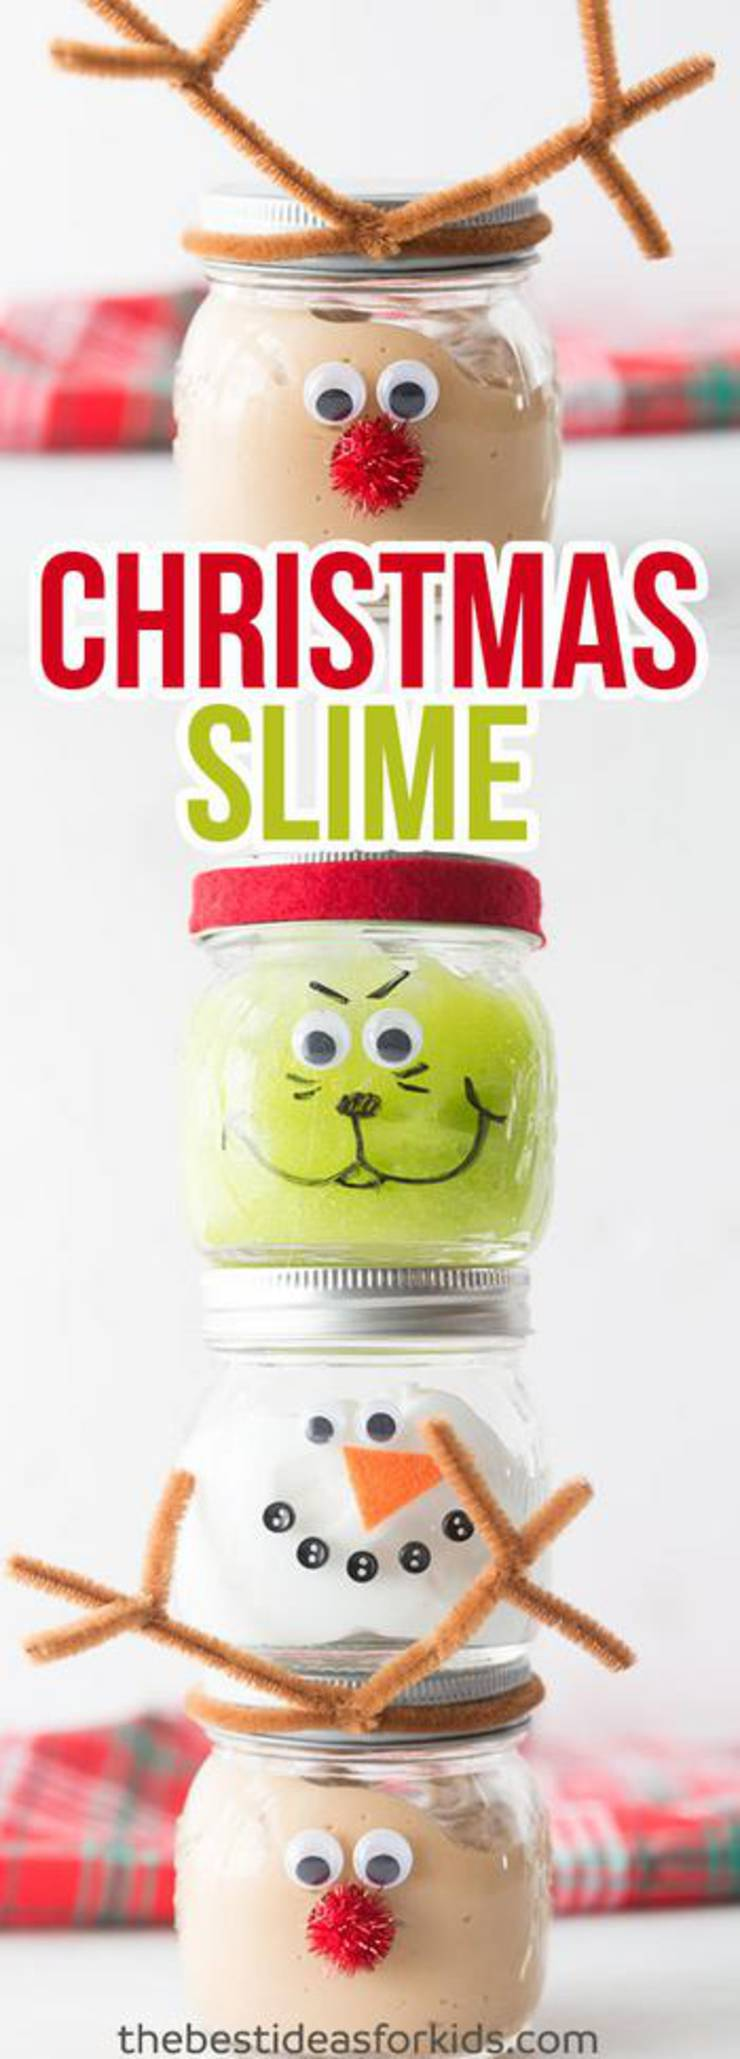 Diy Christmas Slime Jars - Christmas Slime! How To Make DIY Christmas Slime - Easy Homemade Recipes